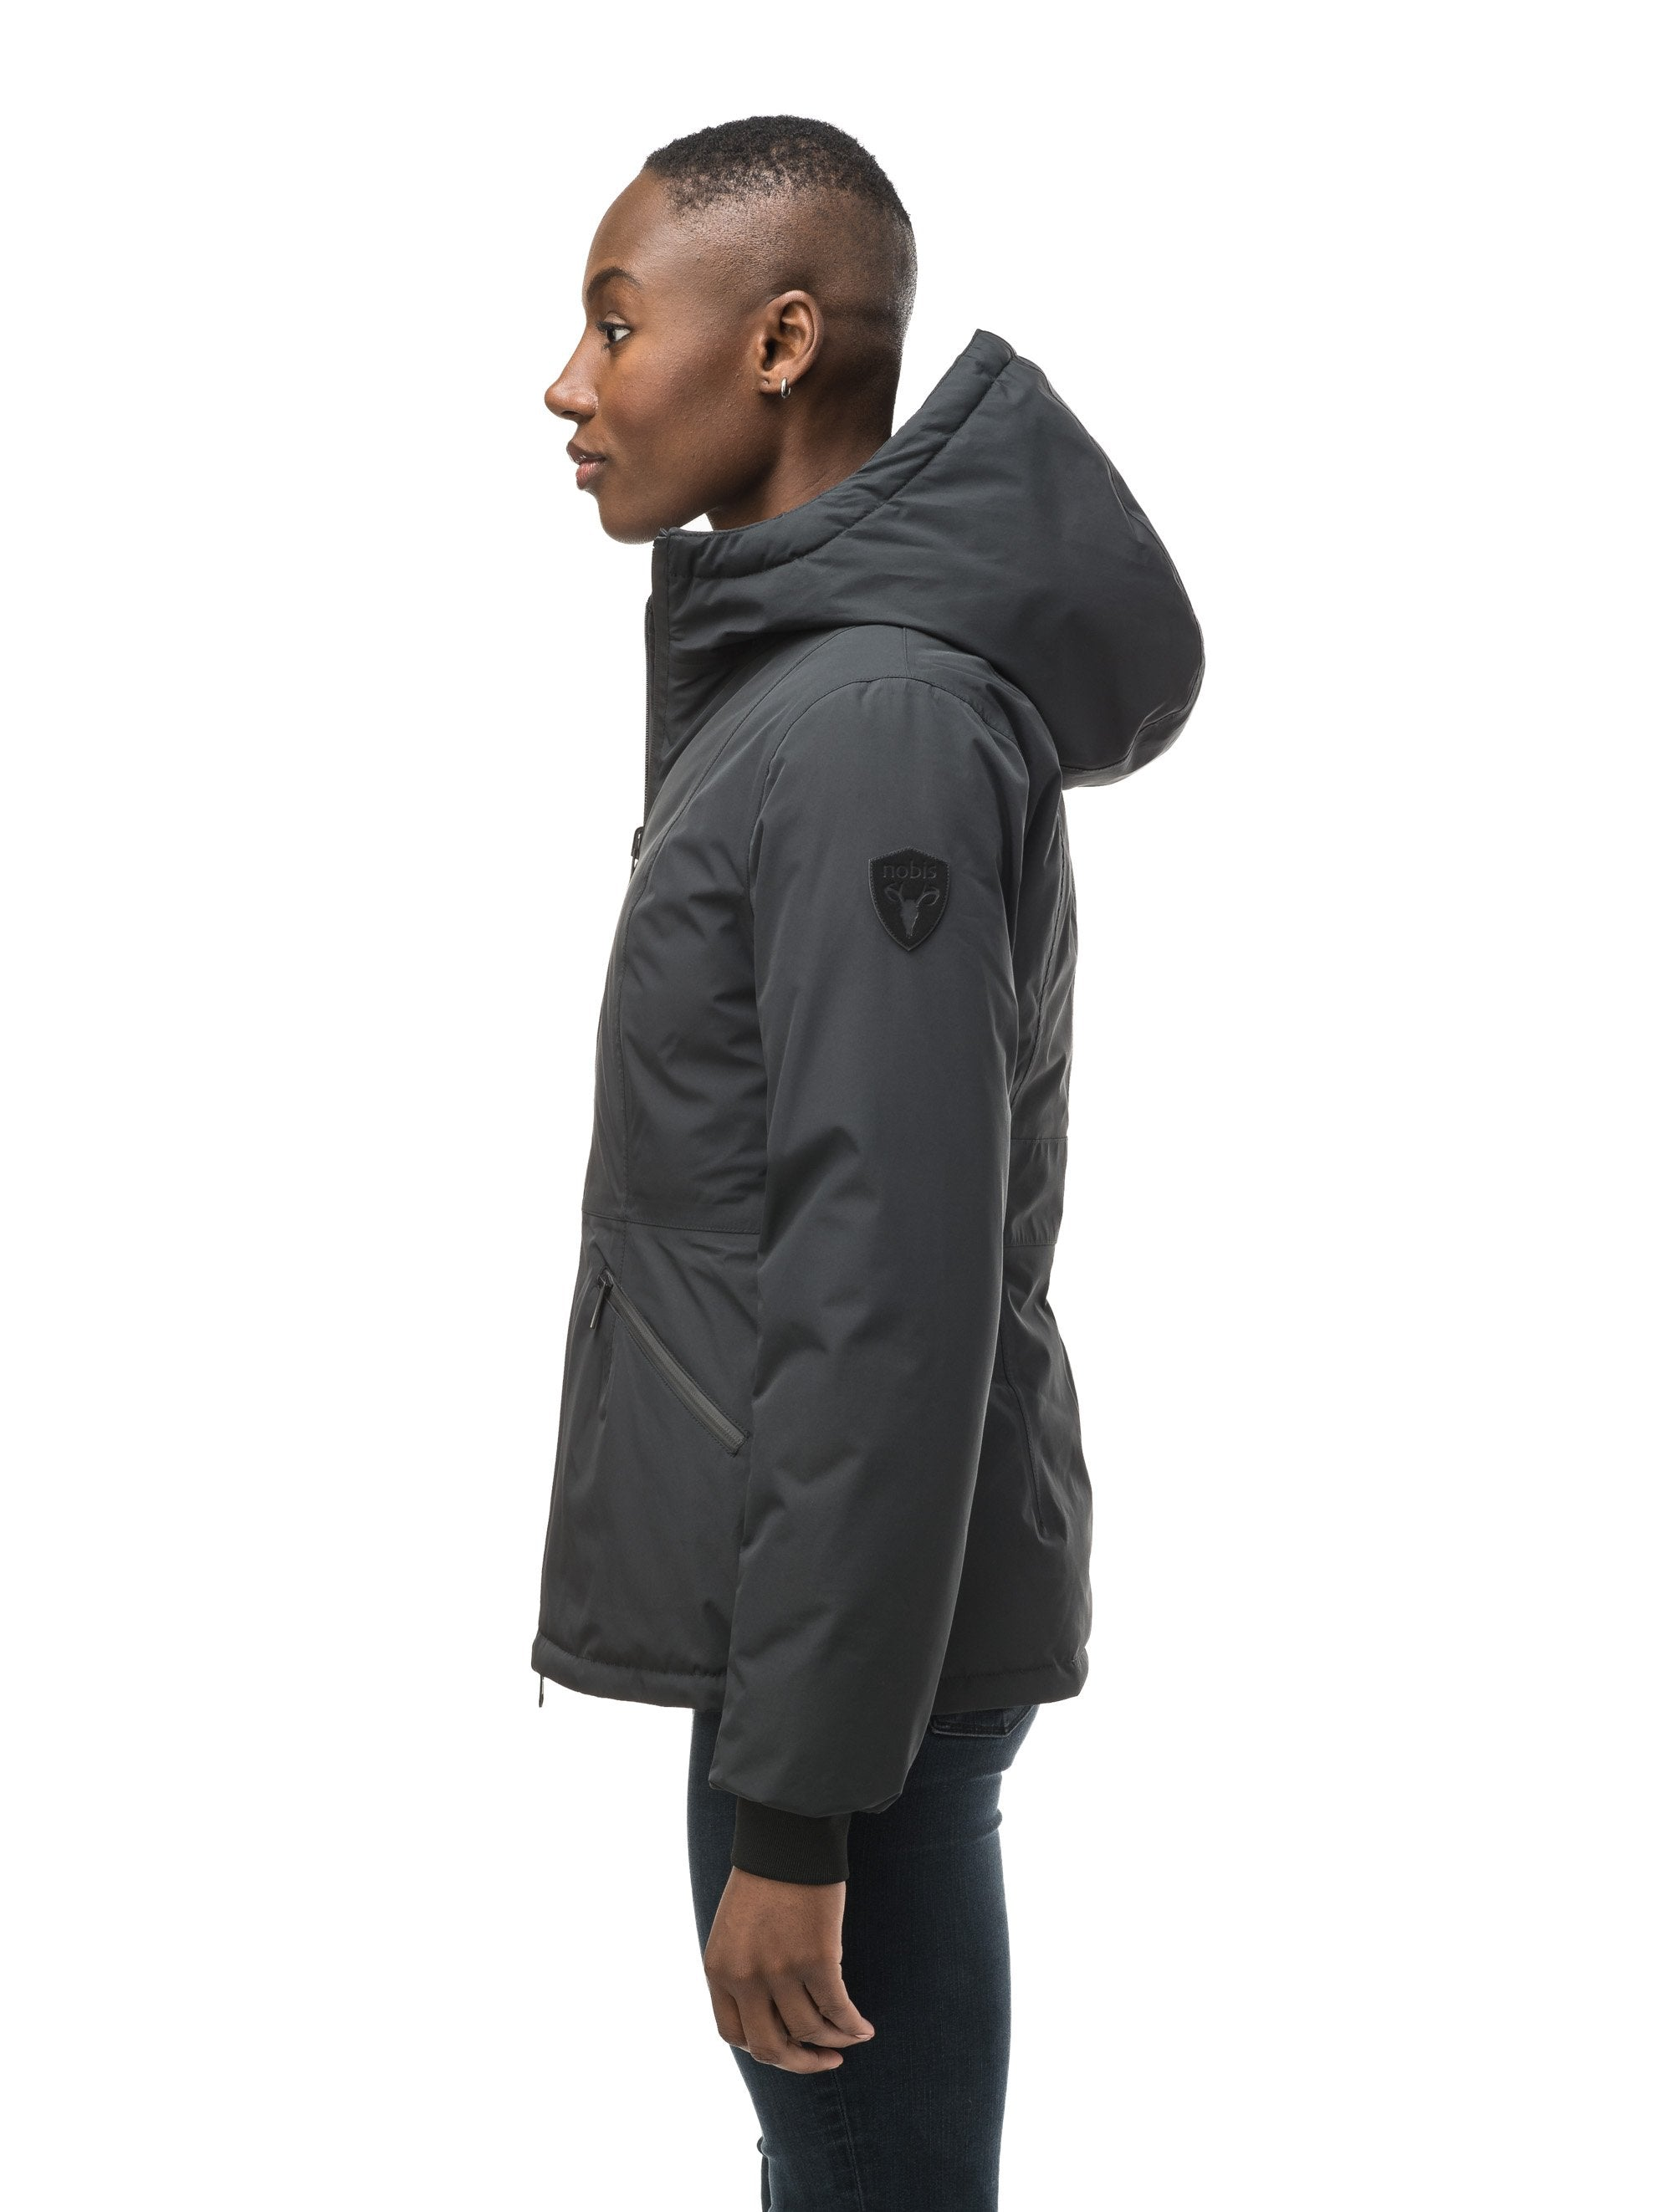 A women's two in one reversible hip length down jacket, one side is quilted and one side is solid waterproof fabric in Black, Burgundy or Fawn